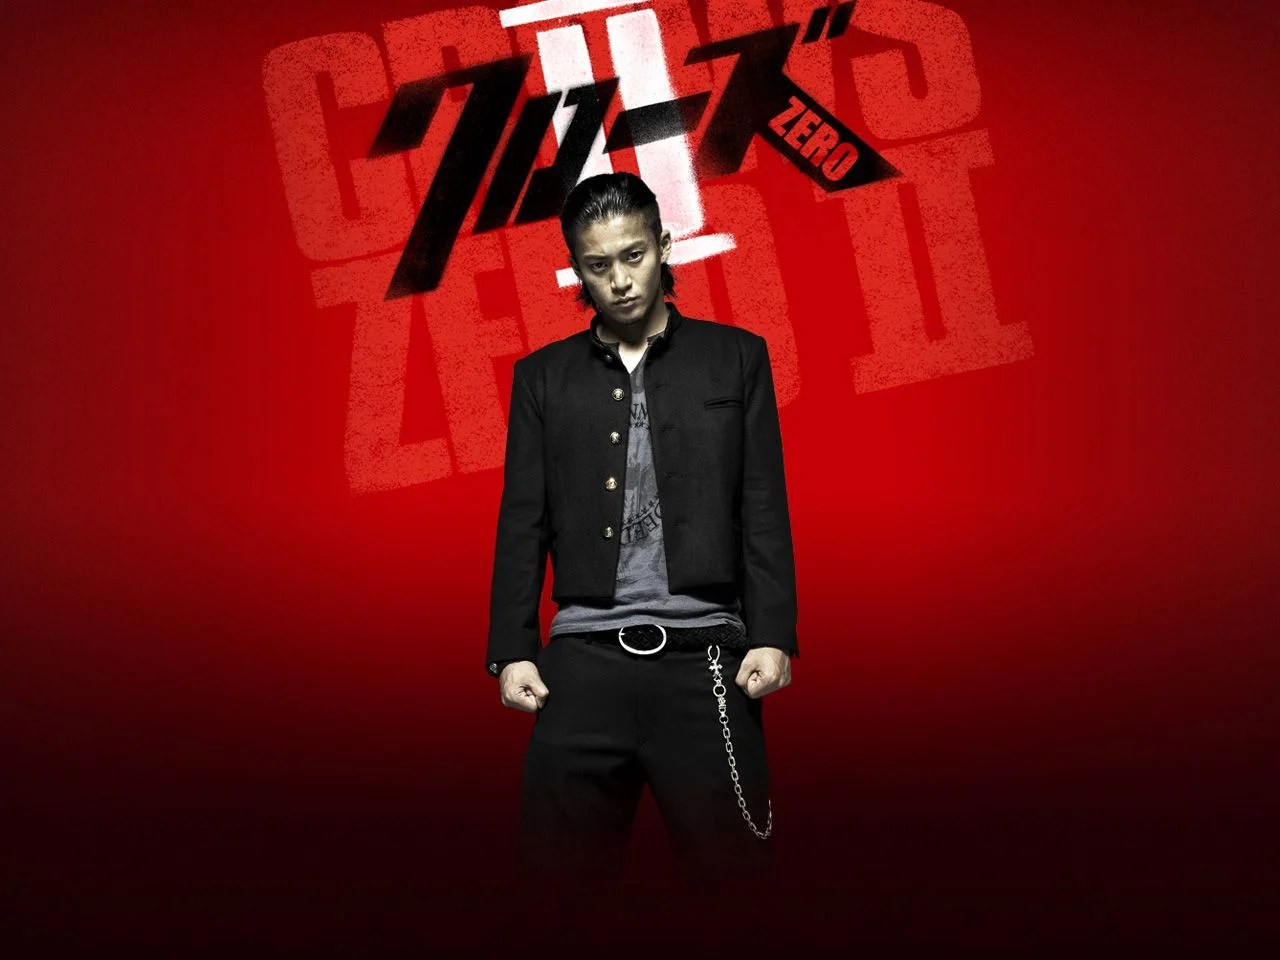 Crows Zero Wallpapers - Top Free Crows Zero Backgrounds - WallpaperAccess